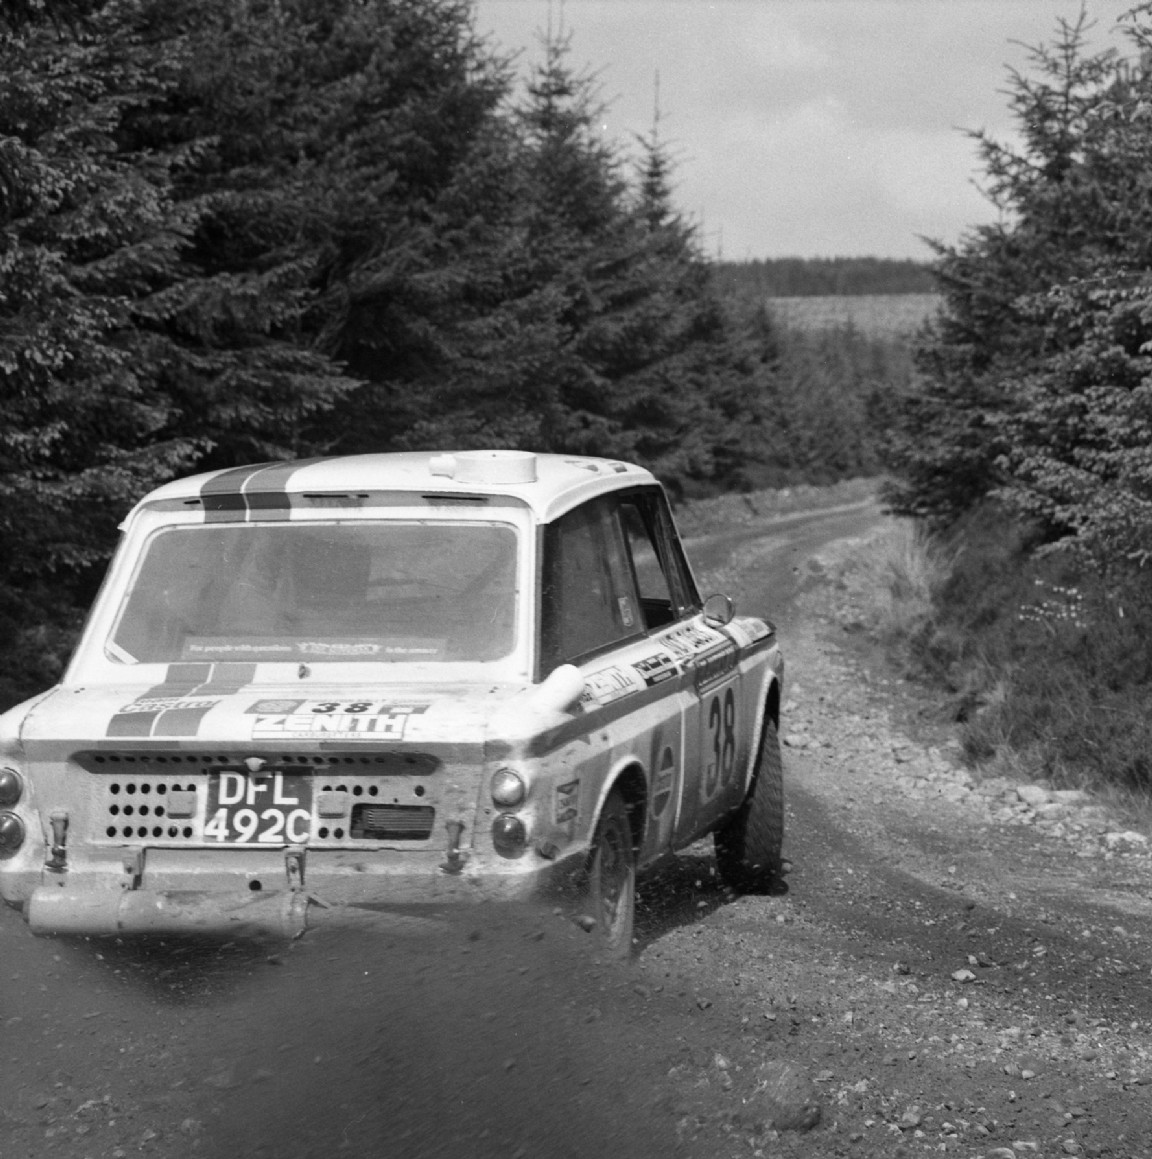 Rally car on forest road, 1973